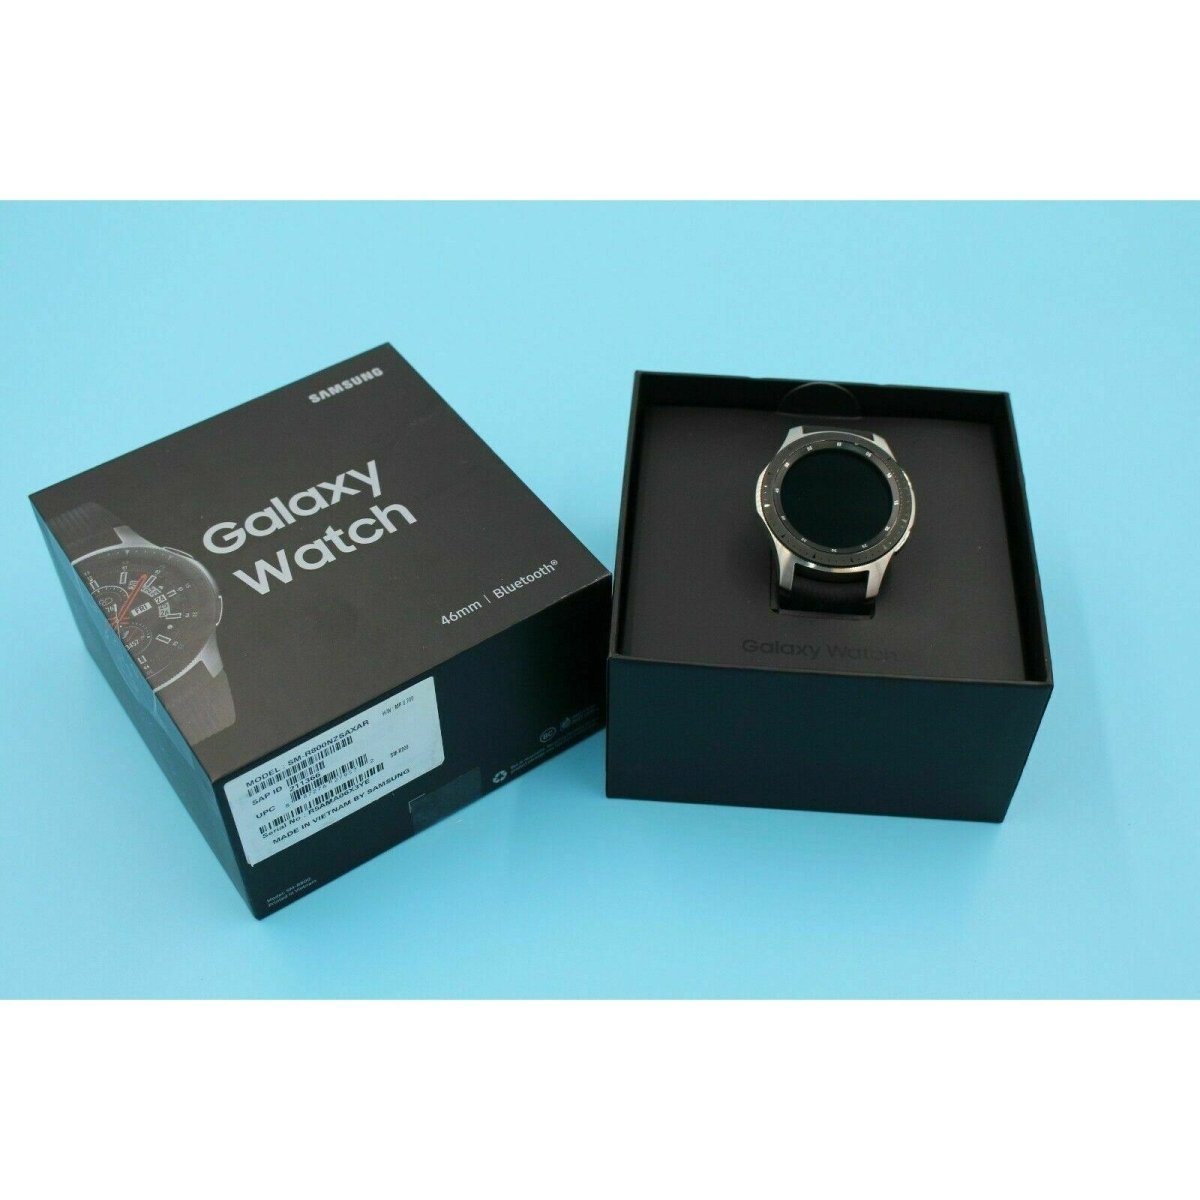 Samsung Galaxy Watch SM-R800 46mm Silver Case Classic Black - Bluetooth - Fix Or Cell Now Device Shop